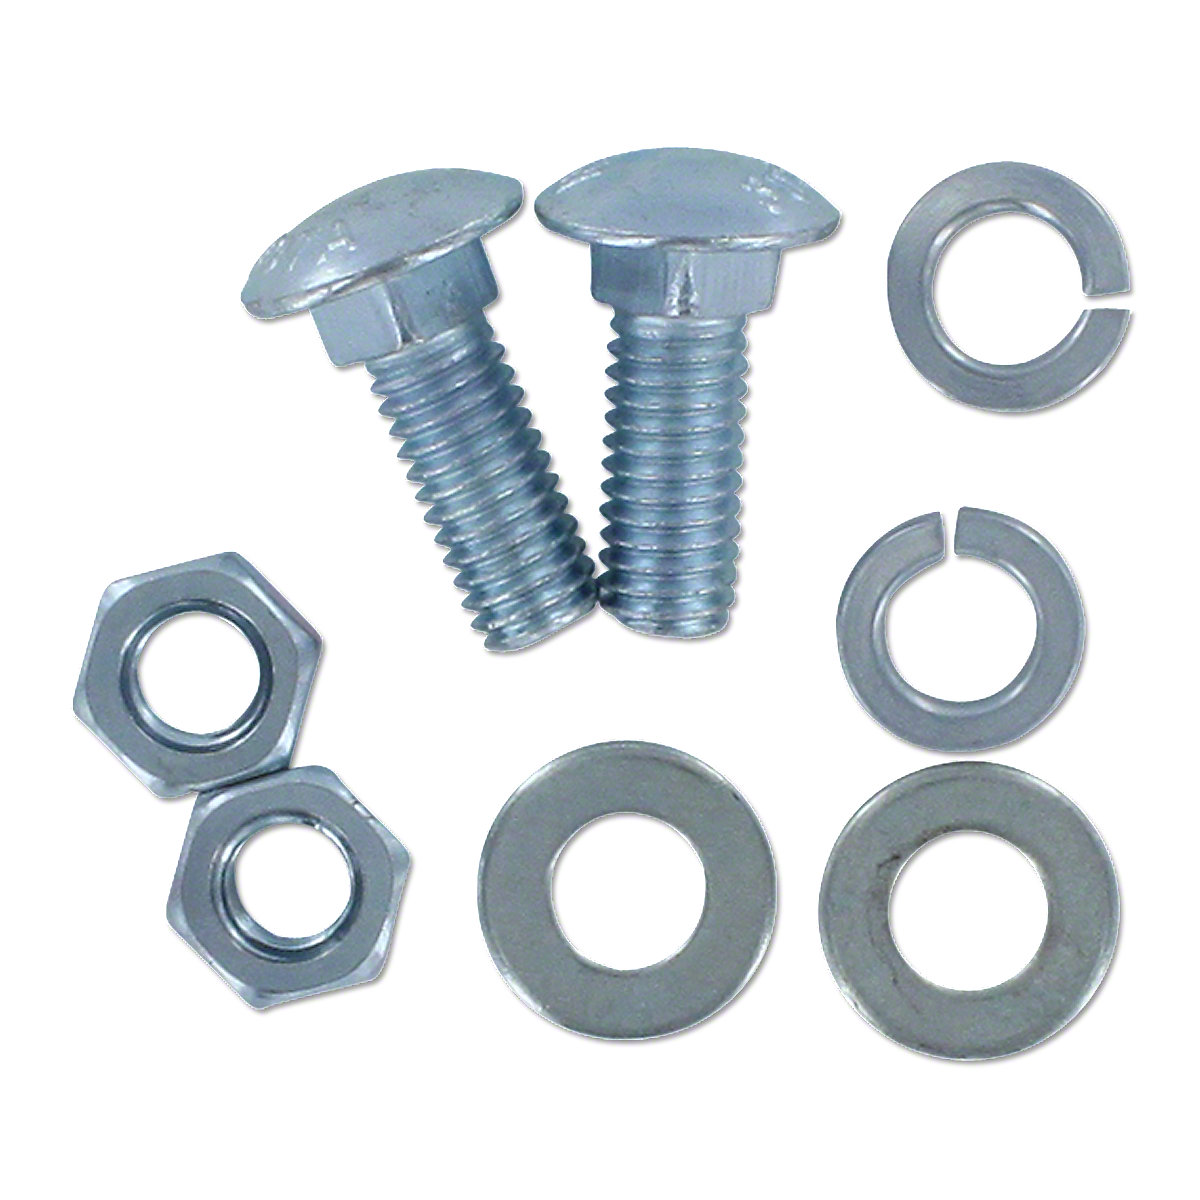 Radiator To Front Support Bolt Kit For Massey Ferguson: TE20, TEA20, TO20, TO30, TO35, 135.